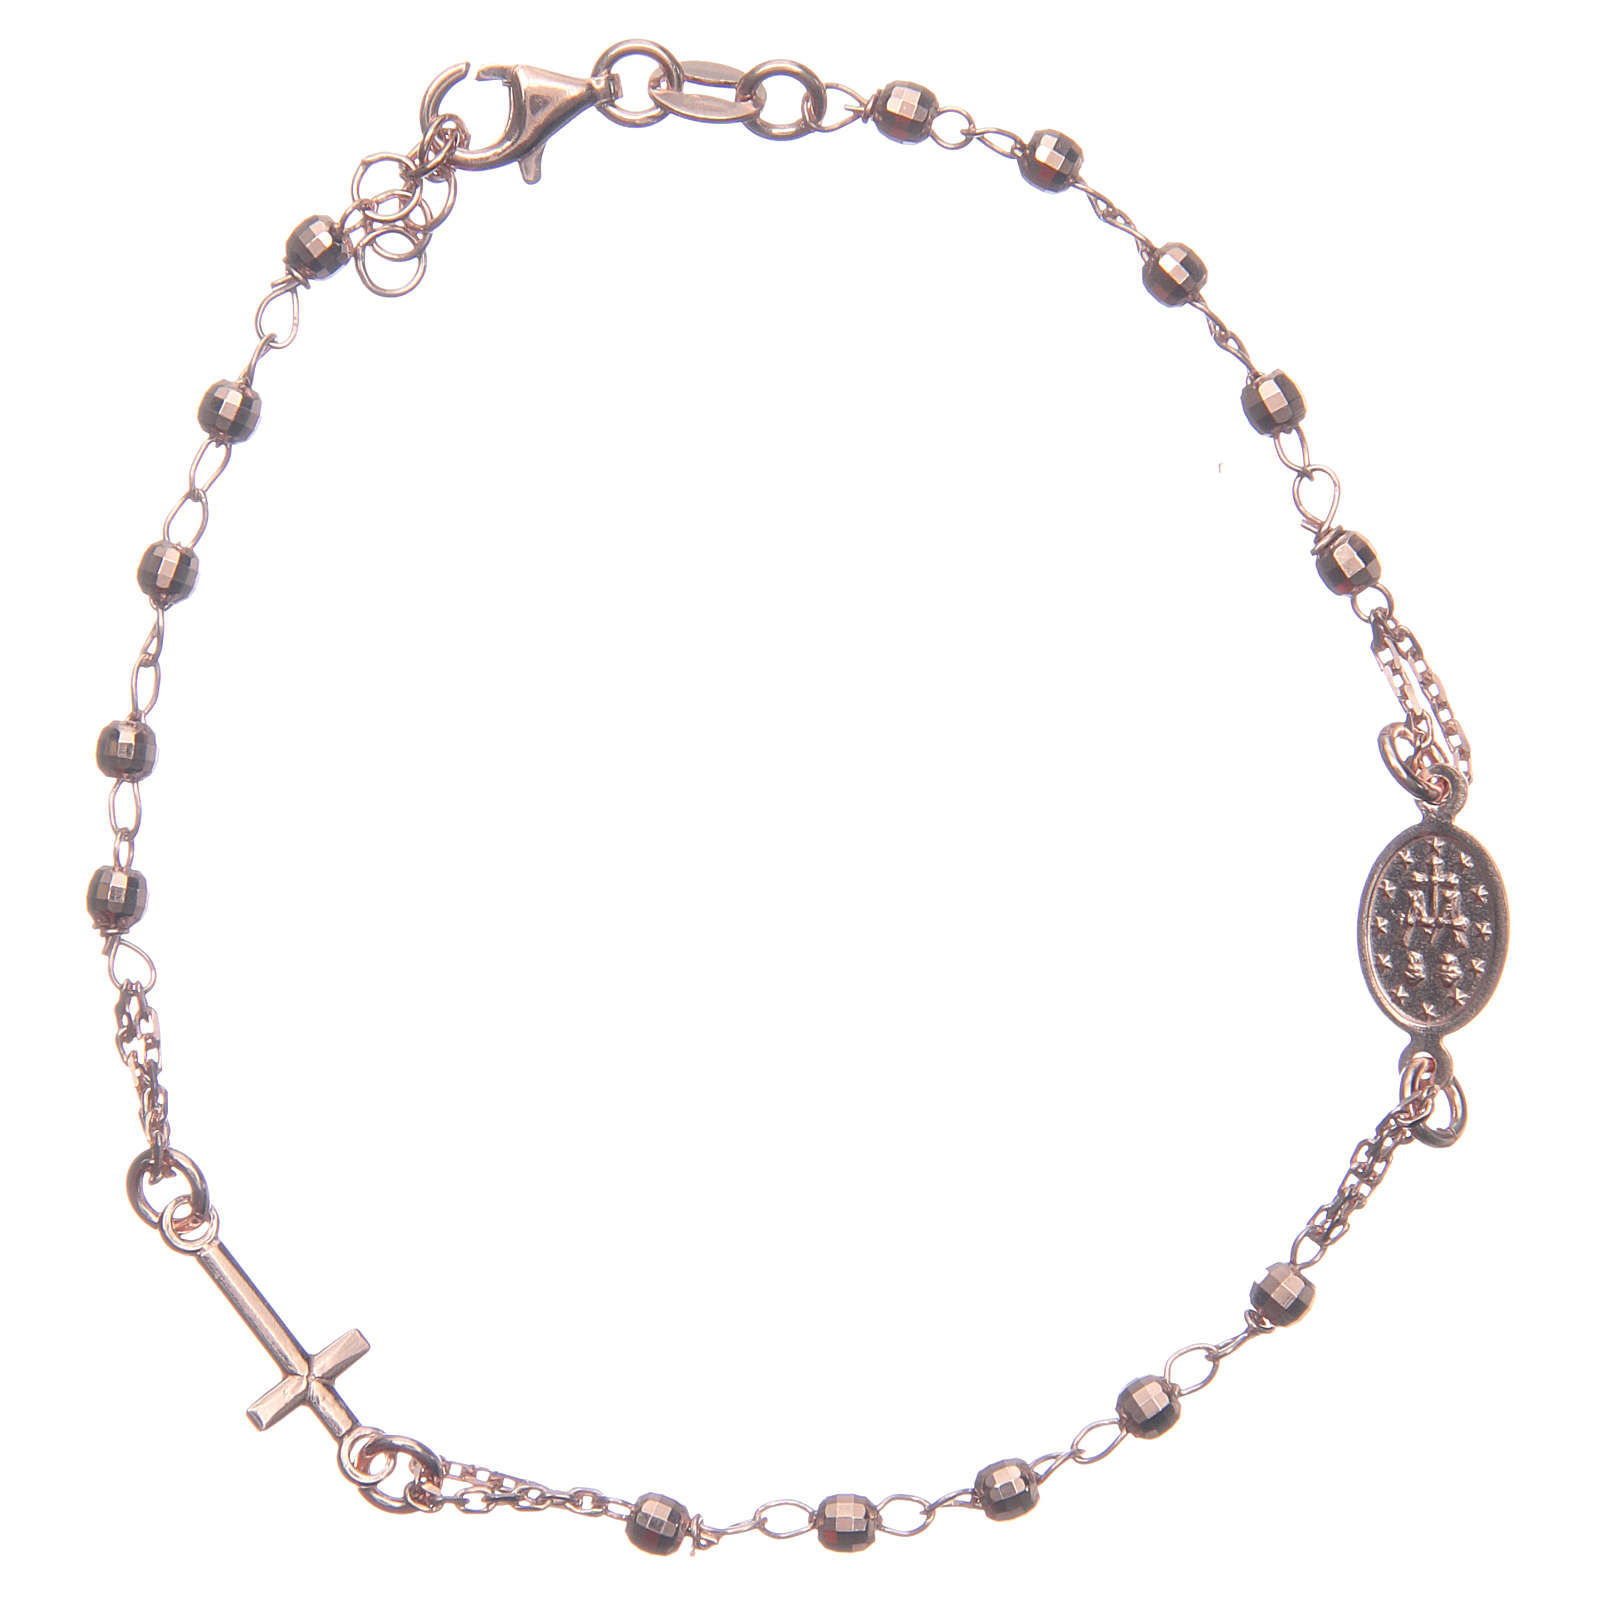 Rosary bracelet rosè and silver 925 sterling silver 4